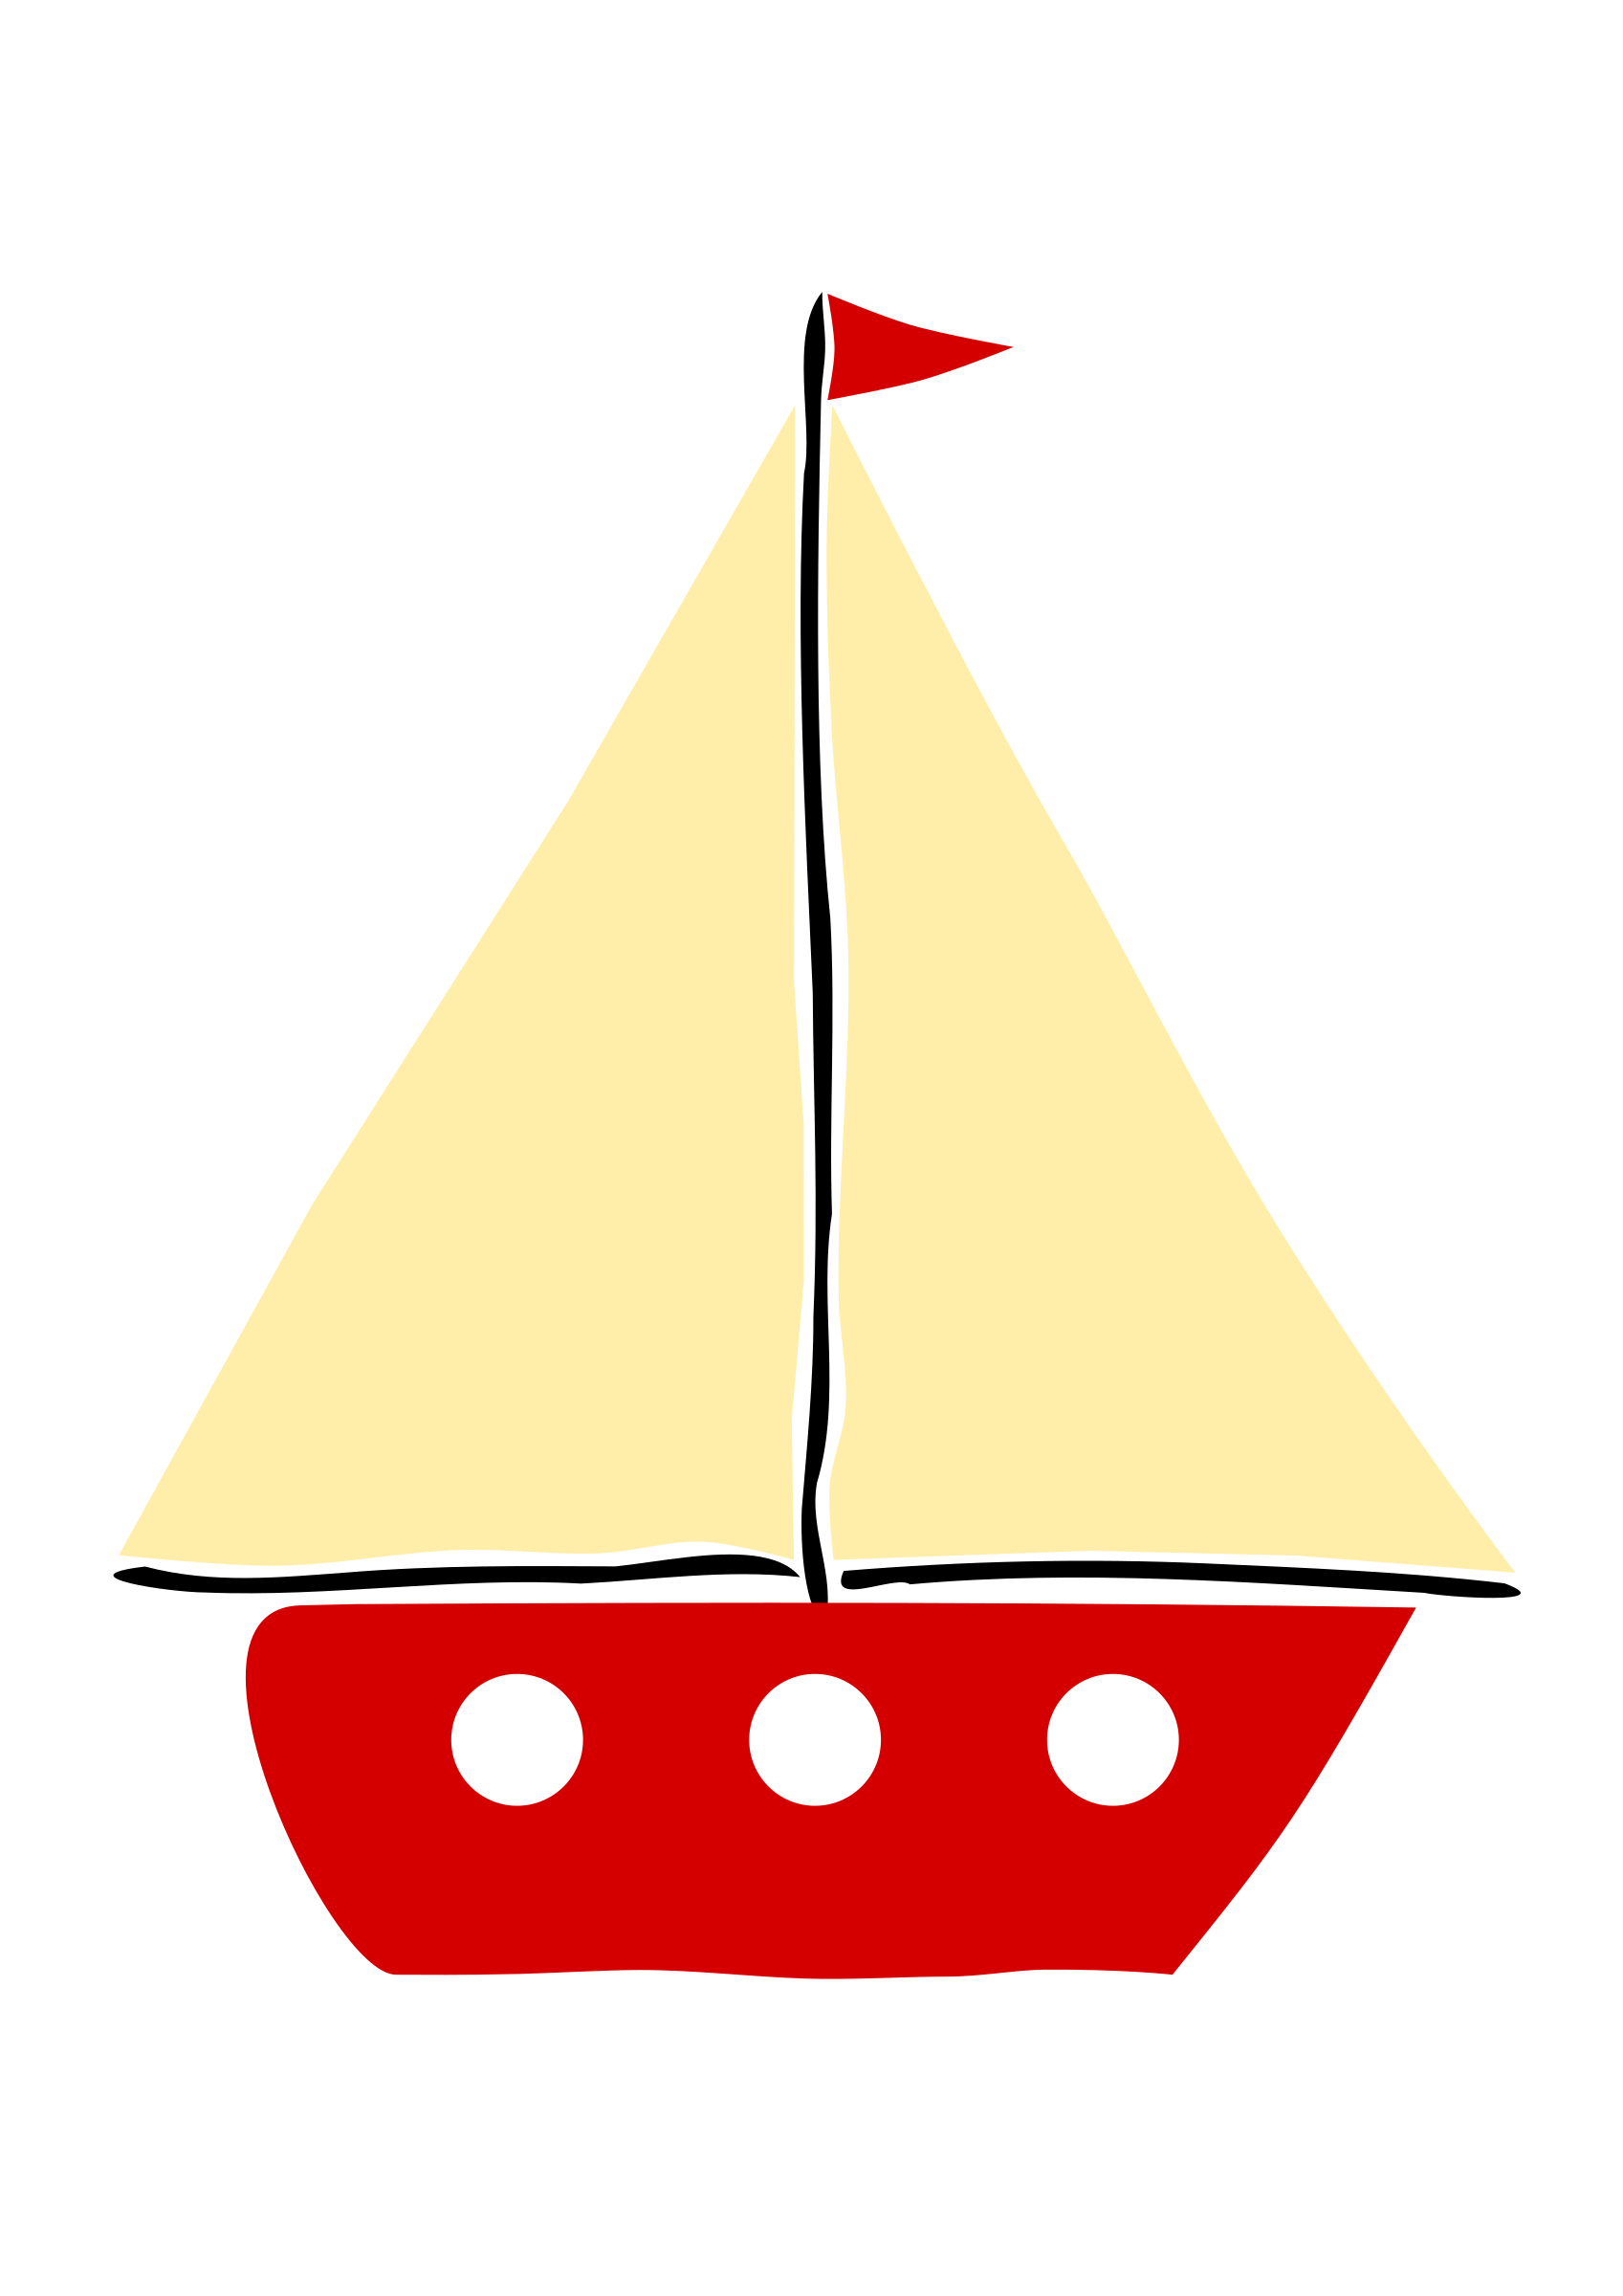 red sail boat 2 by ejmillan modification of my previous drawing